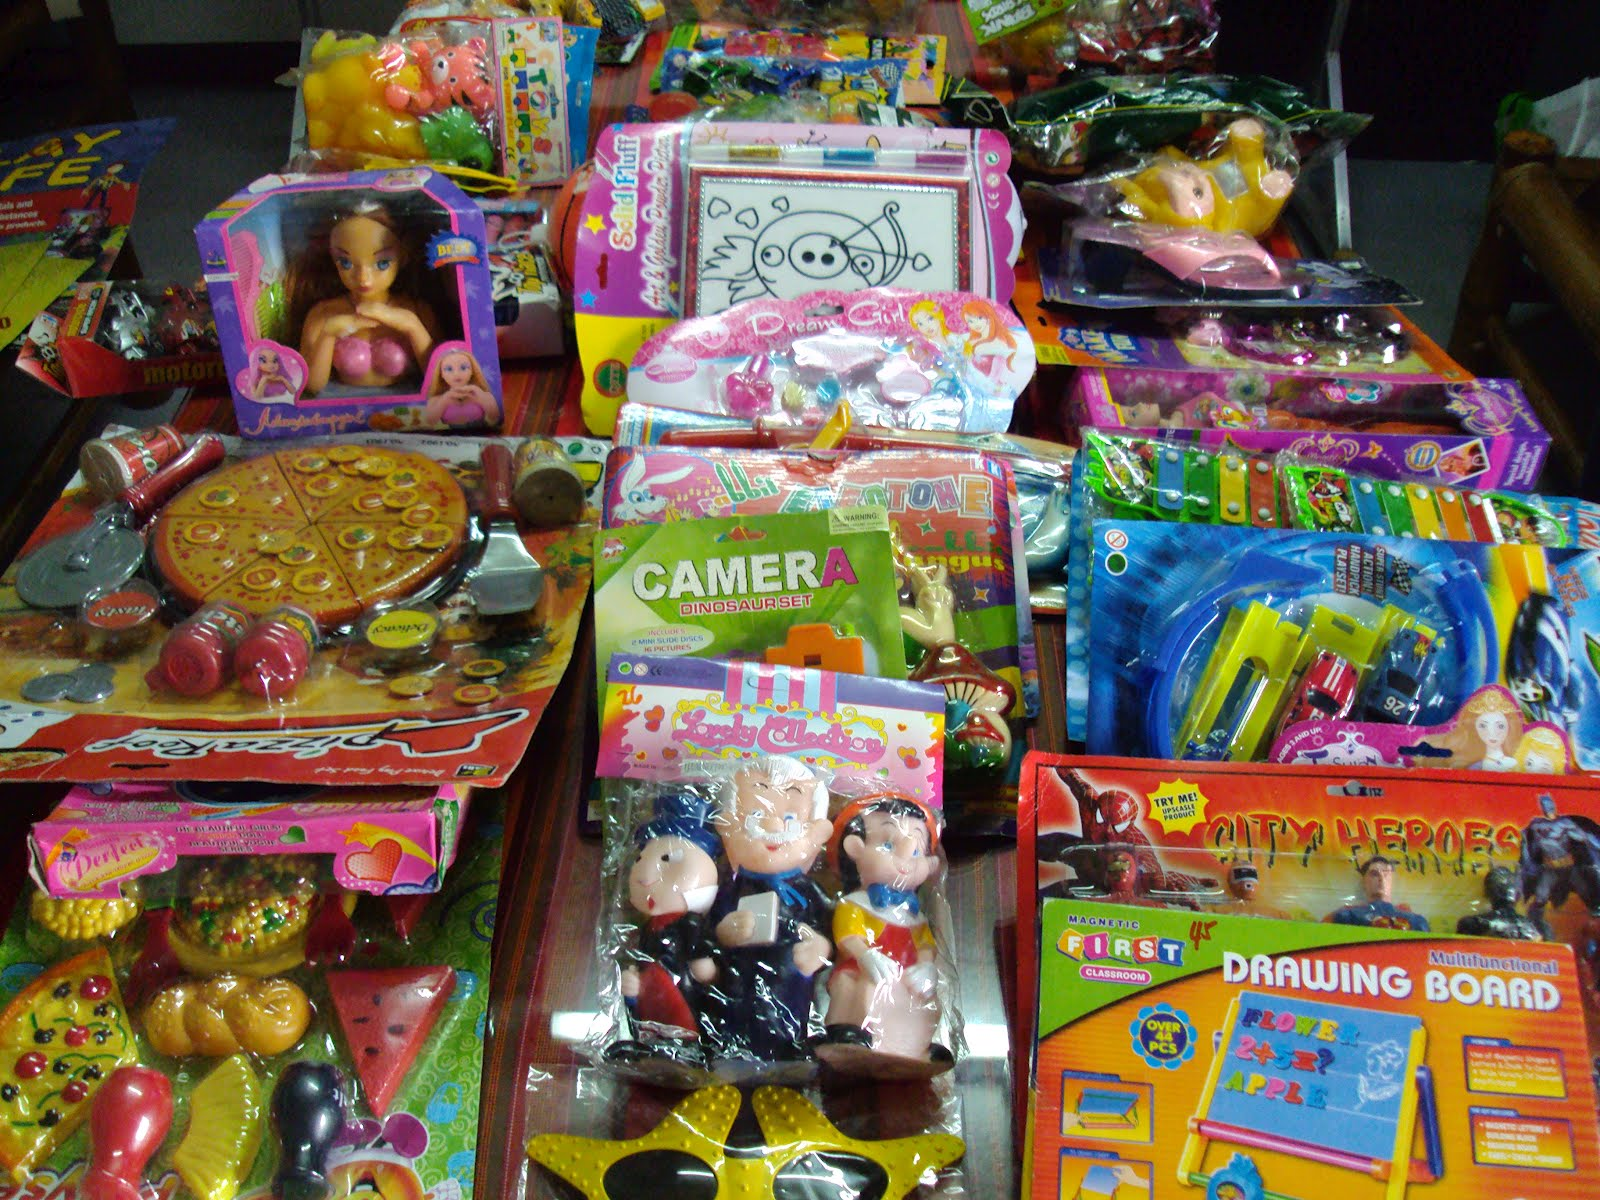 Ecowaste Coalition Detects Toxic Chemicals In 74 Of - Divisoria Toys Wholesale , HD Wallpaper & Backgrounds